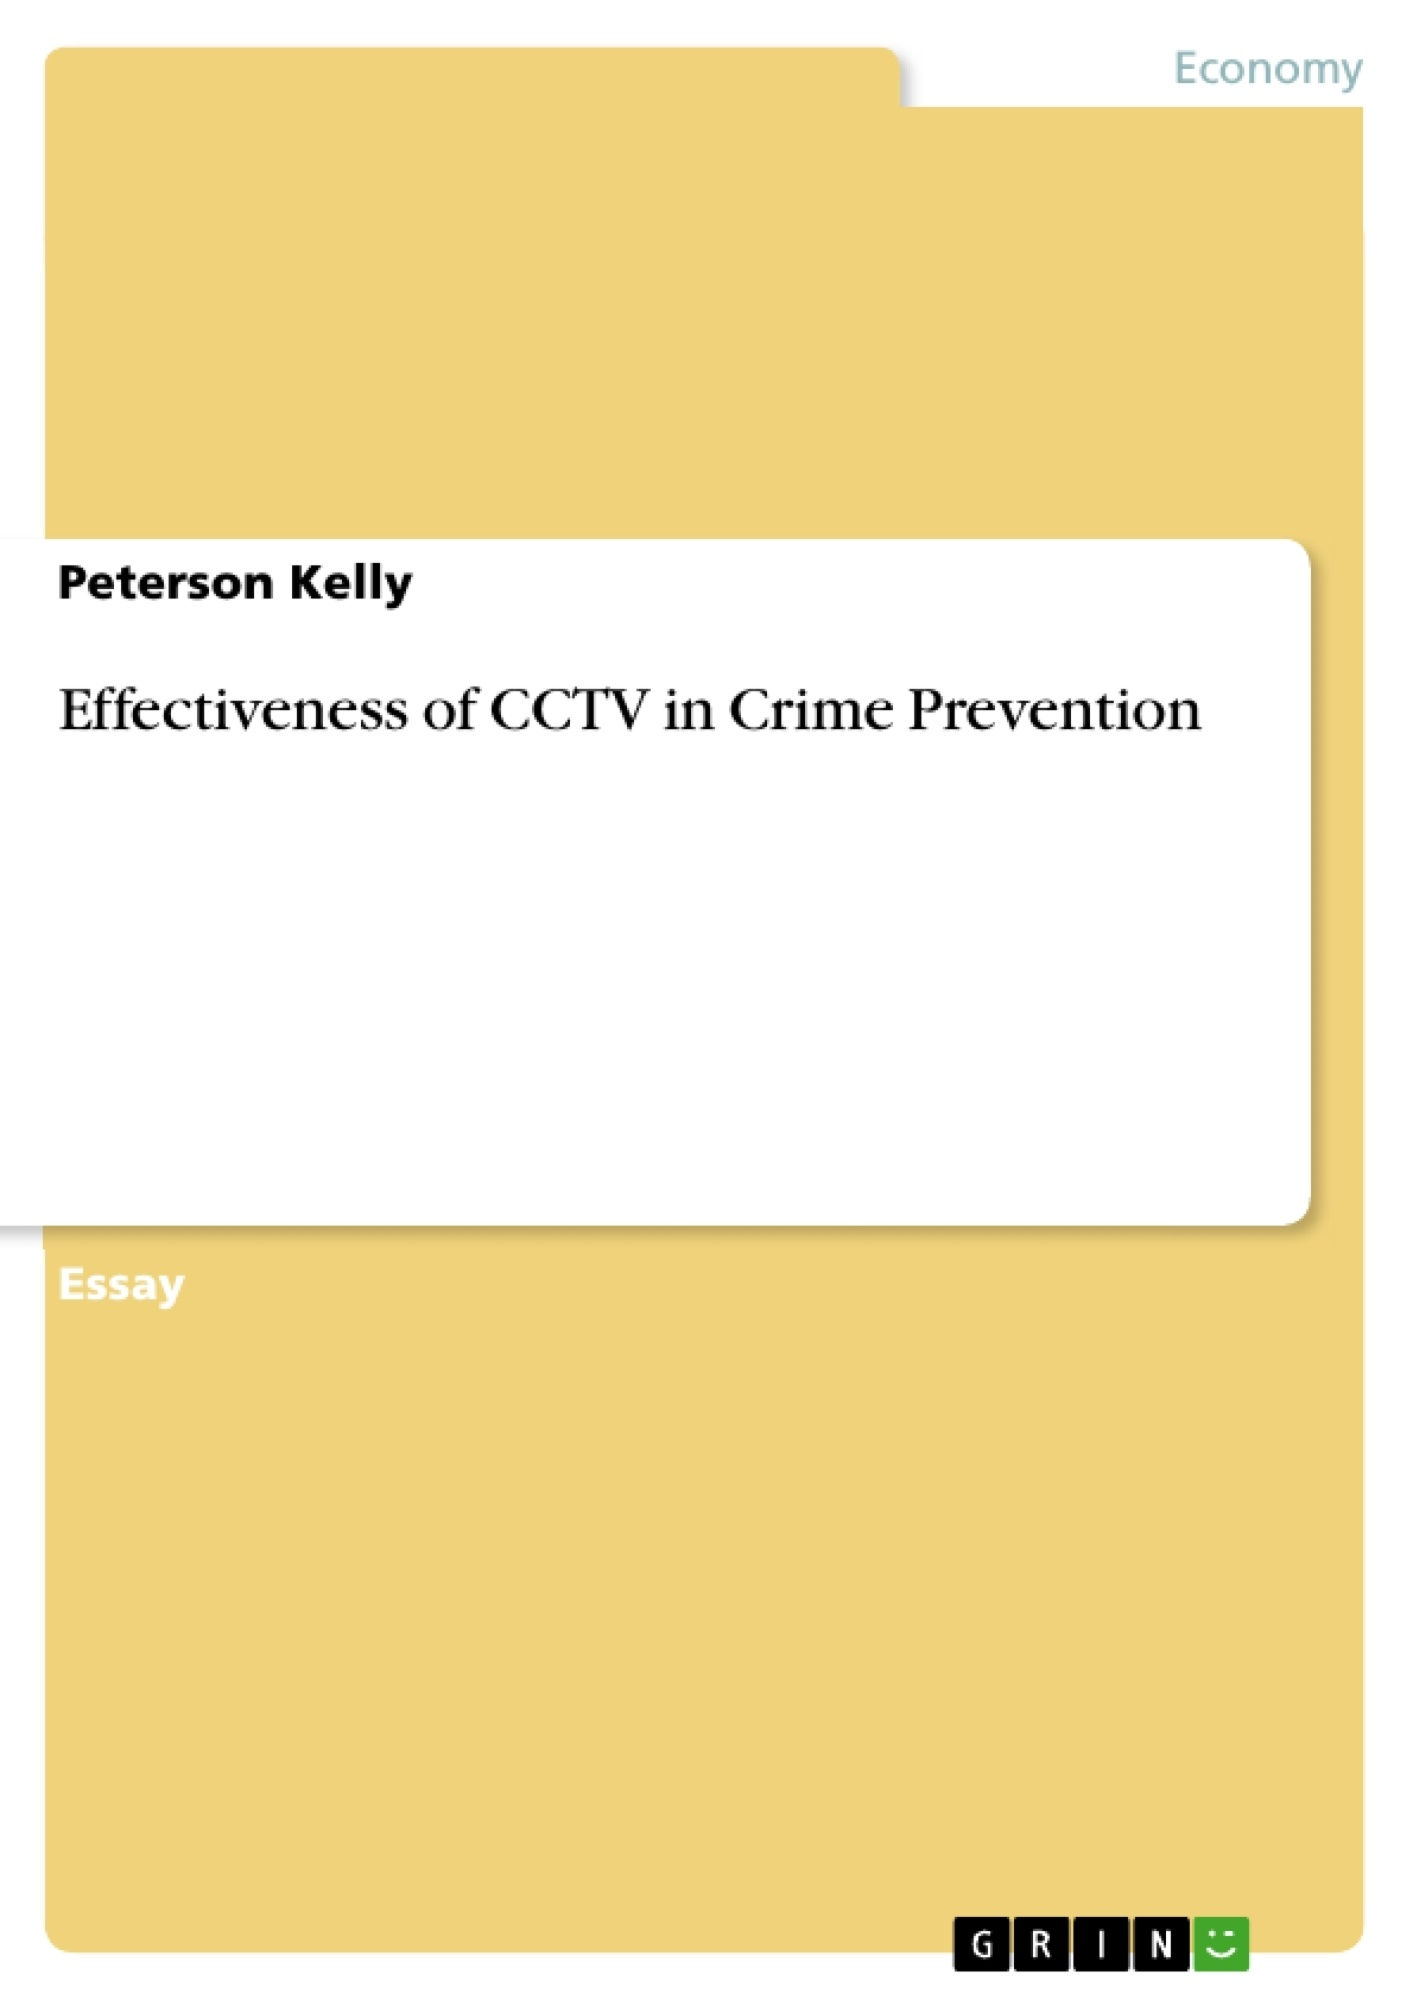 Title: Effectiveness of CCTV in Crime Prevention